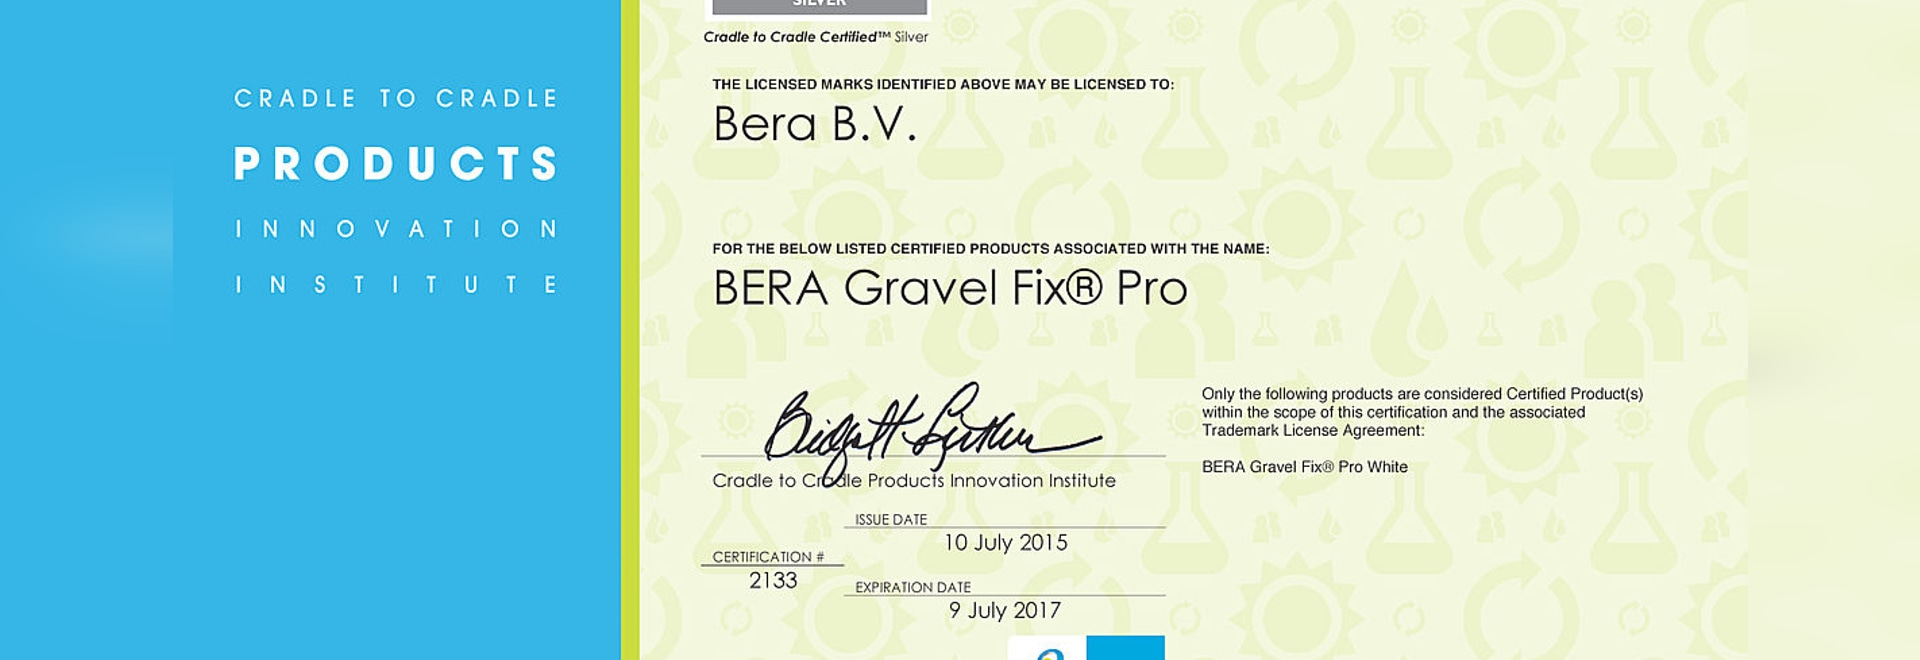 BERA B.V. awarded with prestigious CRADLE TO CRADLE certificate!